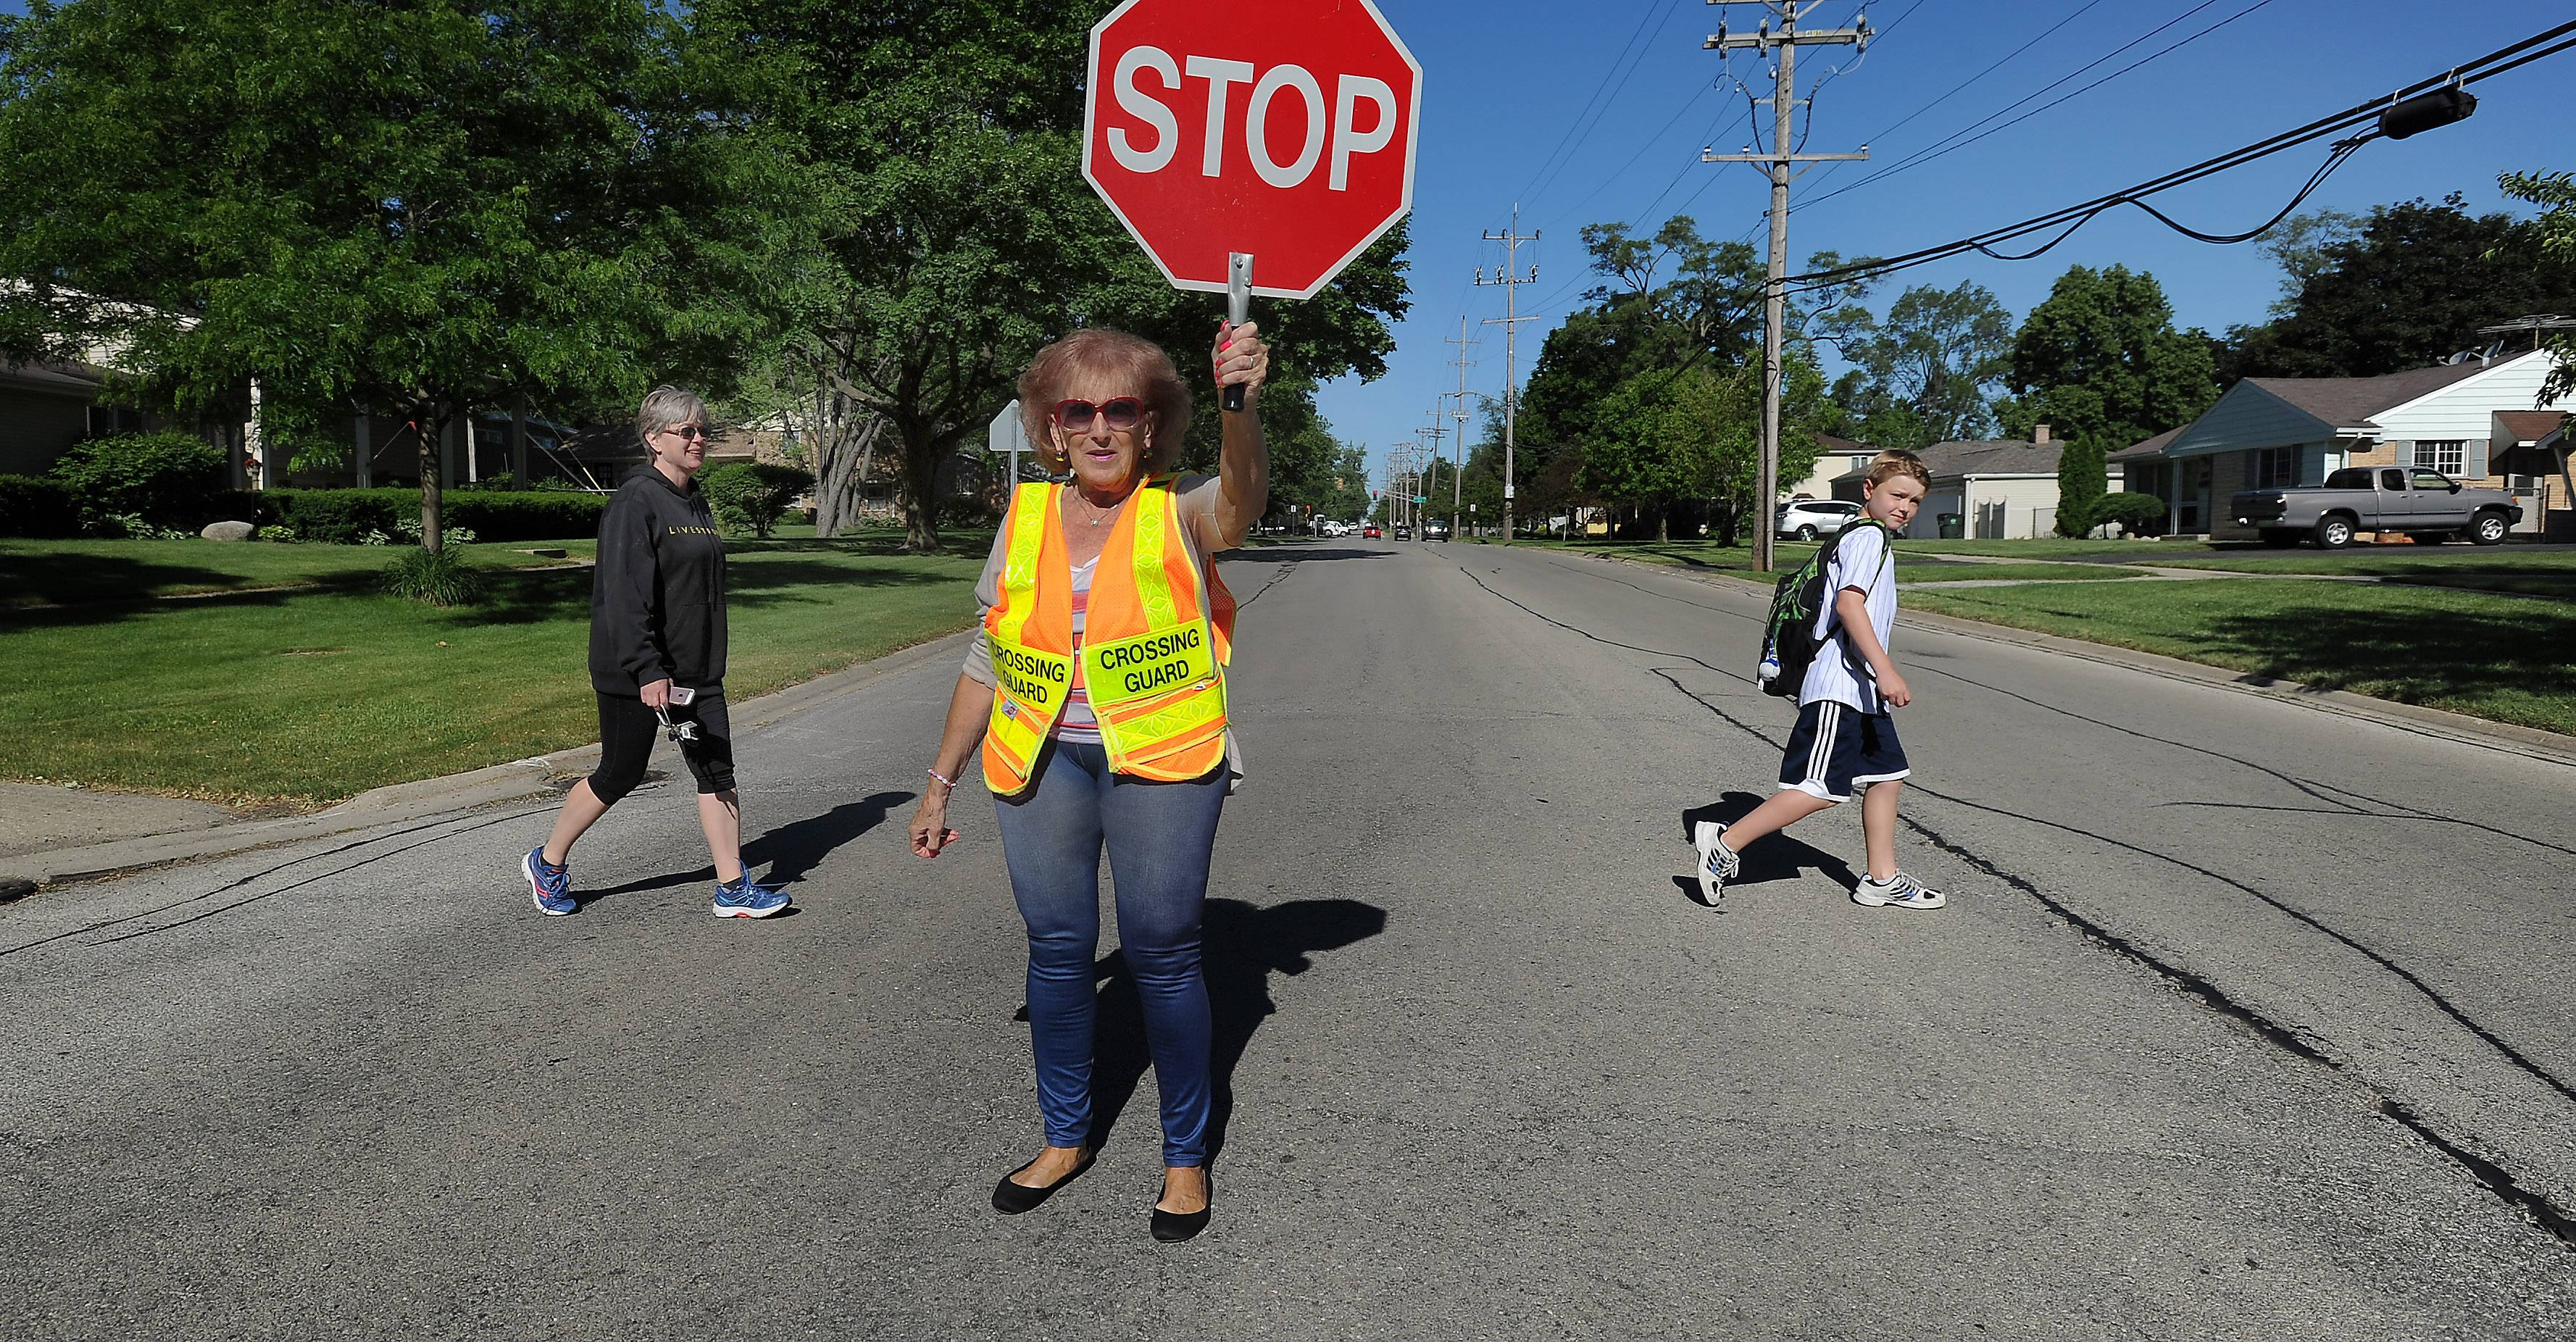 Lois Wardecki, of Wheeling stops all traffic as Daniel Thielen, 10, and his mom Laura of Arlington Heights, cross the road safely as he ventures off to school in the morning. Wardecki is retiring after two decades as a crossing guard helping students get to Olive-Mary Stitt Elementary and St. James schools.